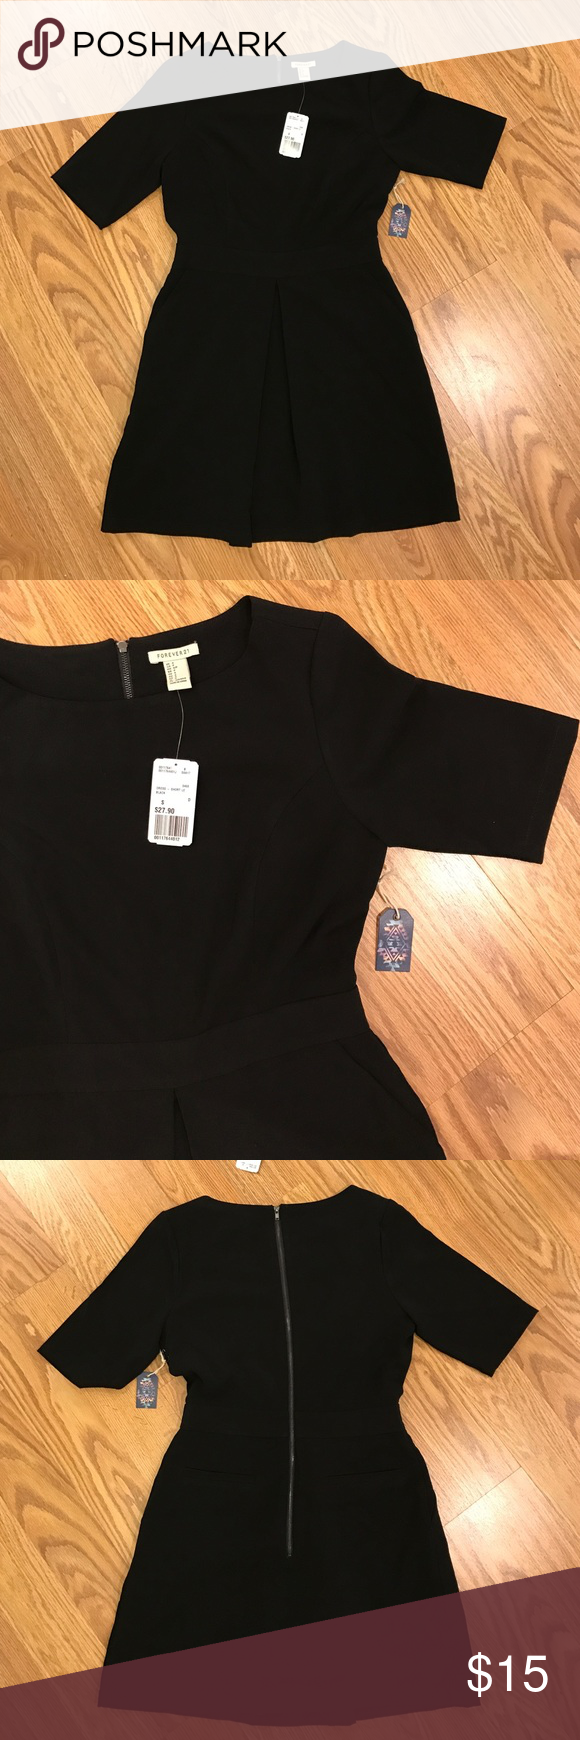 ✨ SALE 🖤 NWT F21 Black Short Sleeve Dress Size S NWT • Forever 21 • Black • Short Sleeve • Dress • Size S • 2 pockets • zipper back • fully lined • Adorable with belt, unfortunately too big for me 😭 • bundle and save • reasonable offers welcome • accessories not included Forever 21 Dresses